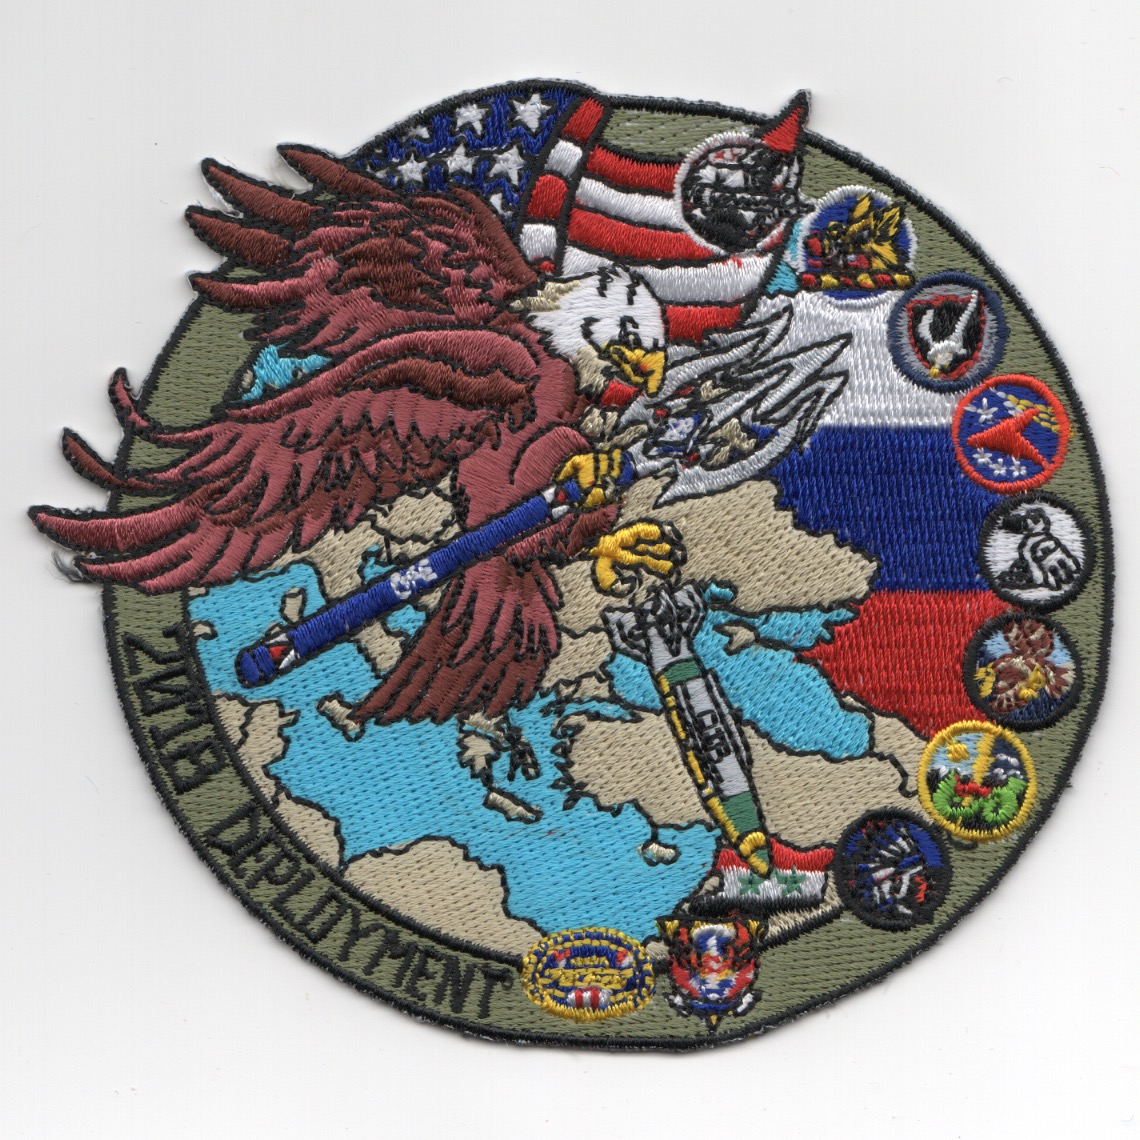 VFA-11 '2018 GAGGLE' Cruise Patch